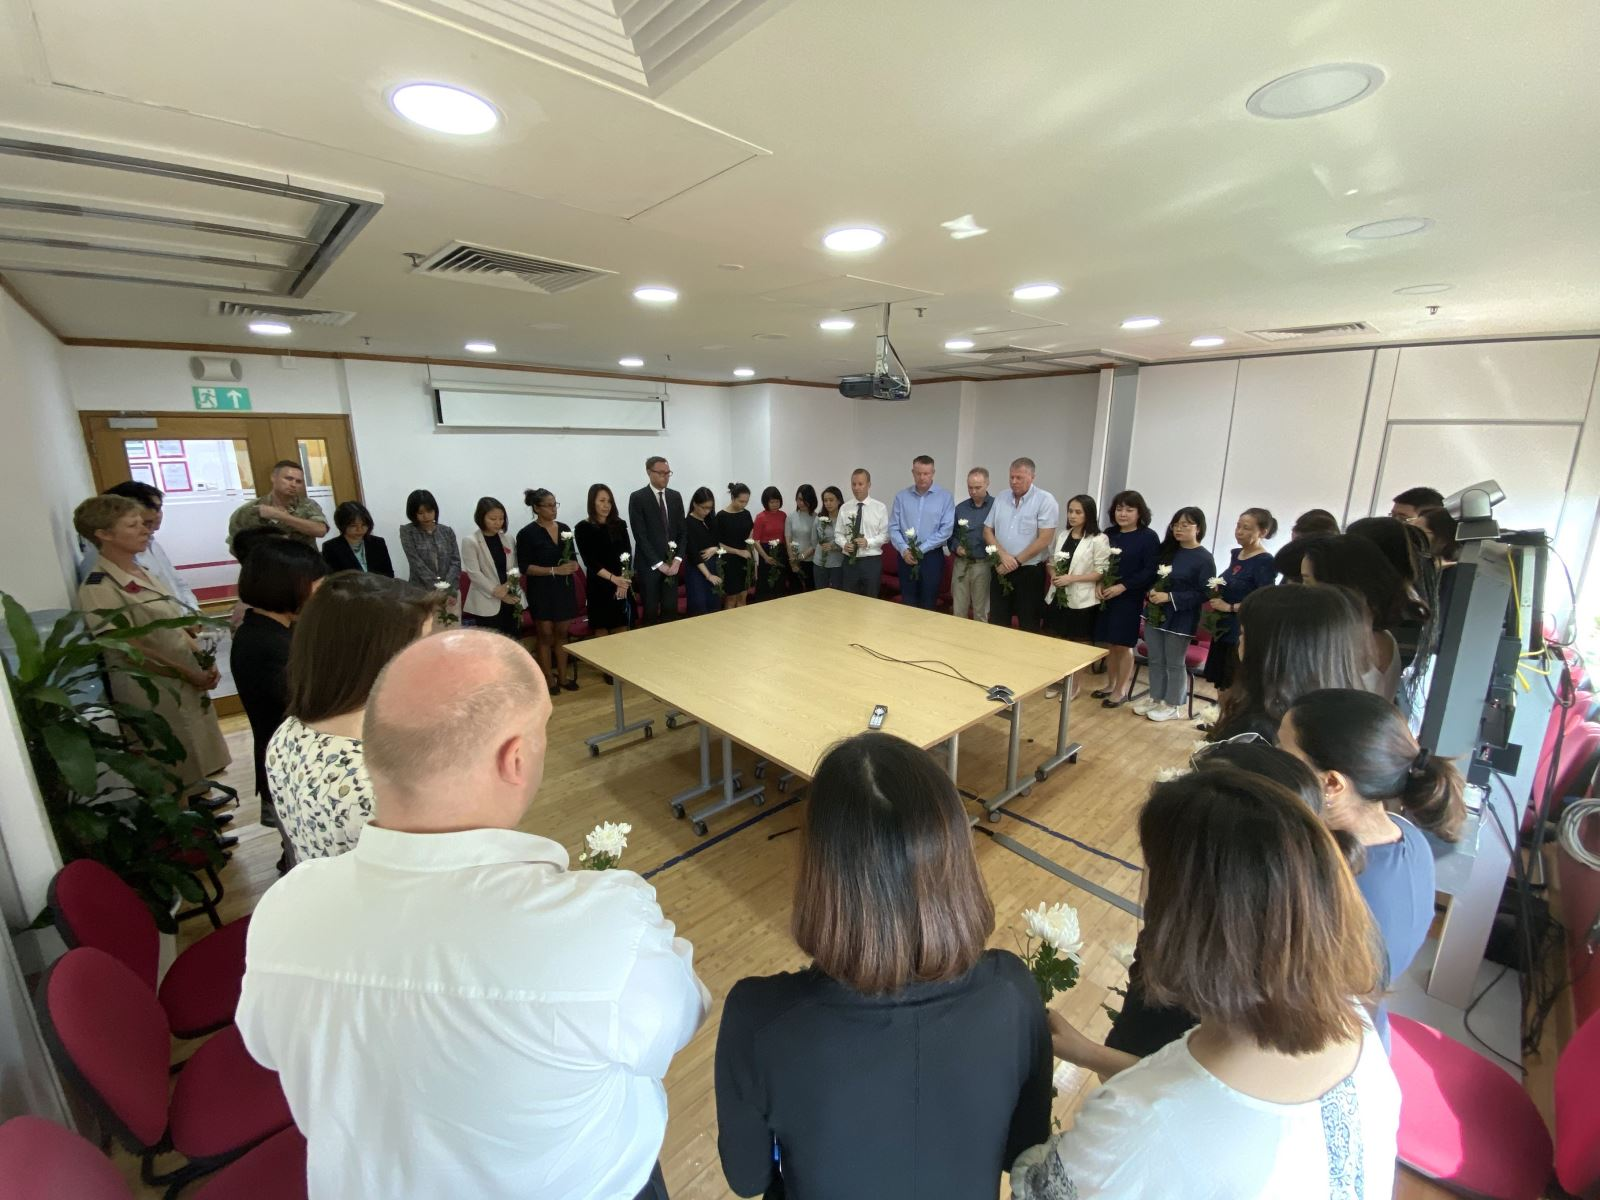 UK embassy in Hanoi holds minute's silence to commemorate Essex victims